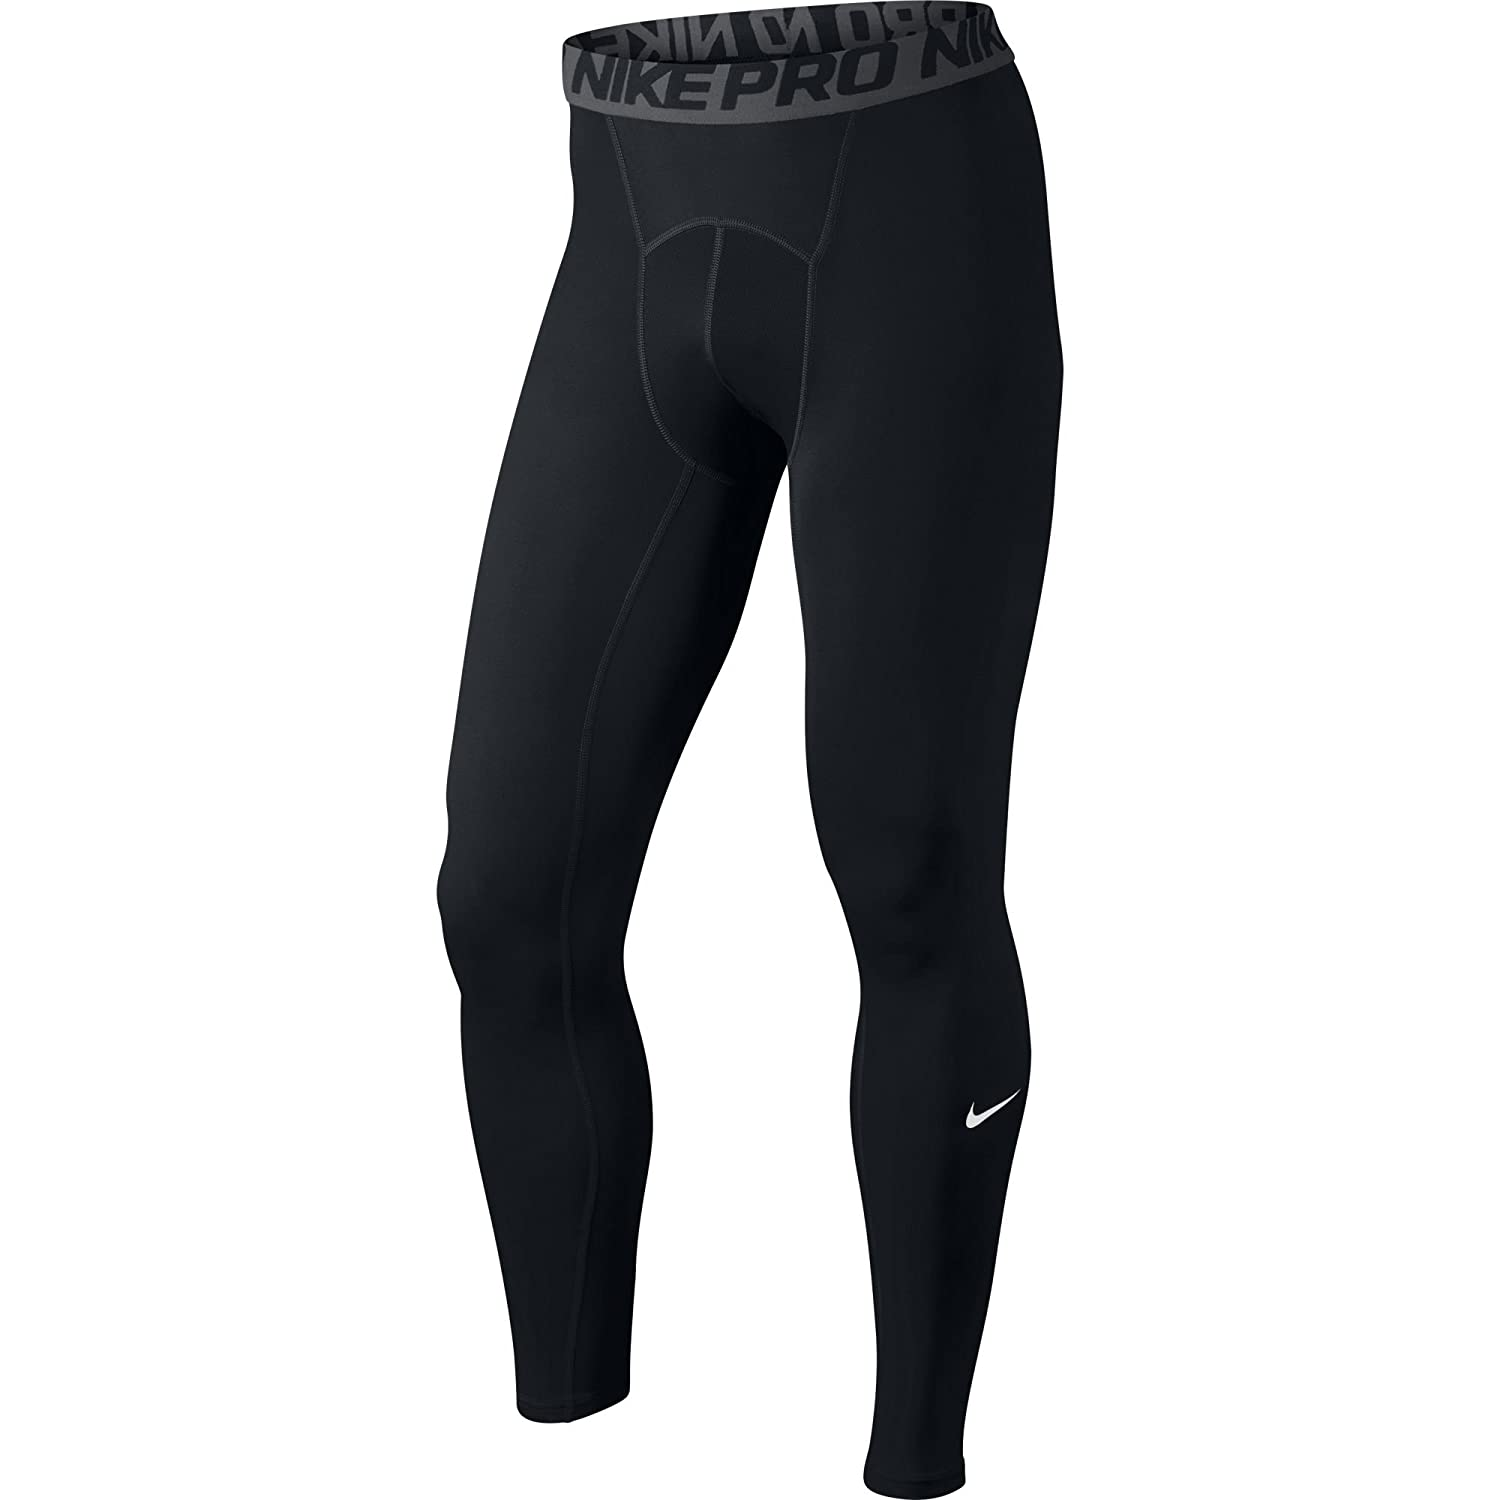 outlet boutique variety of designs and colors buying new NIKE Men's Pro Tights